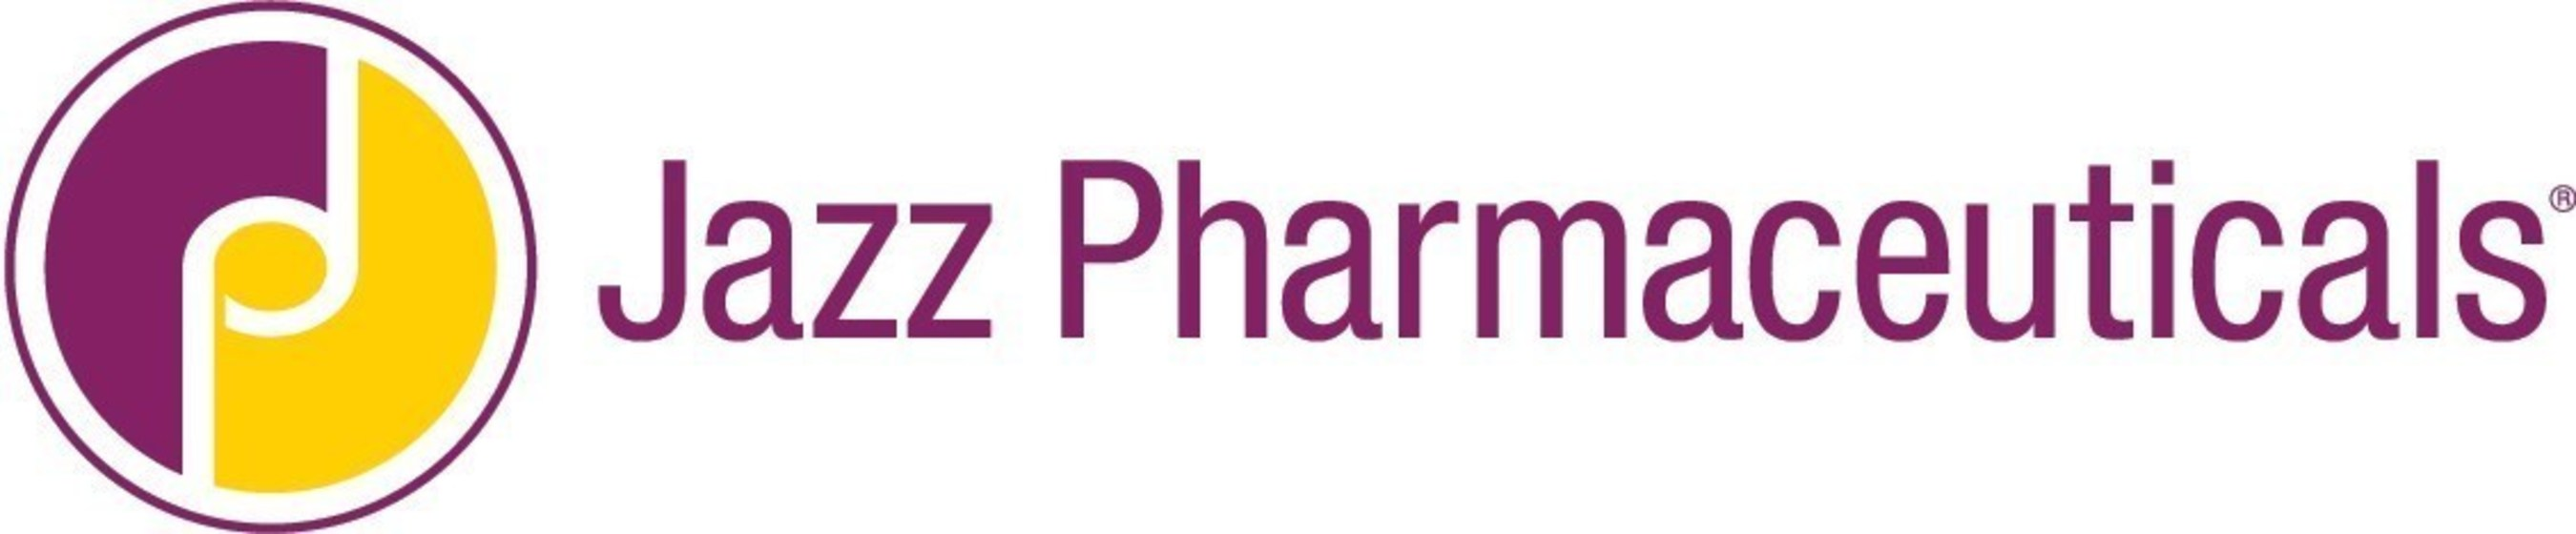 Jazz Pharmaceuticals Logo